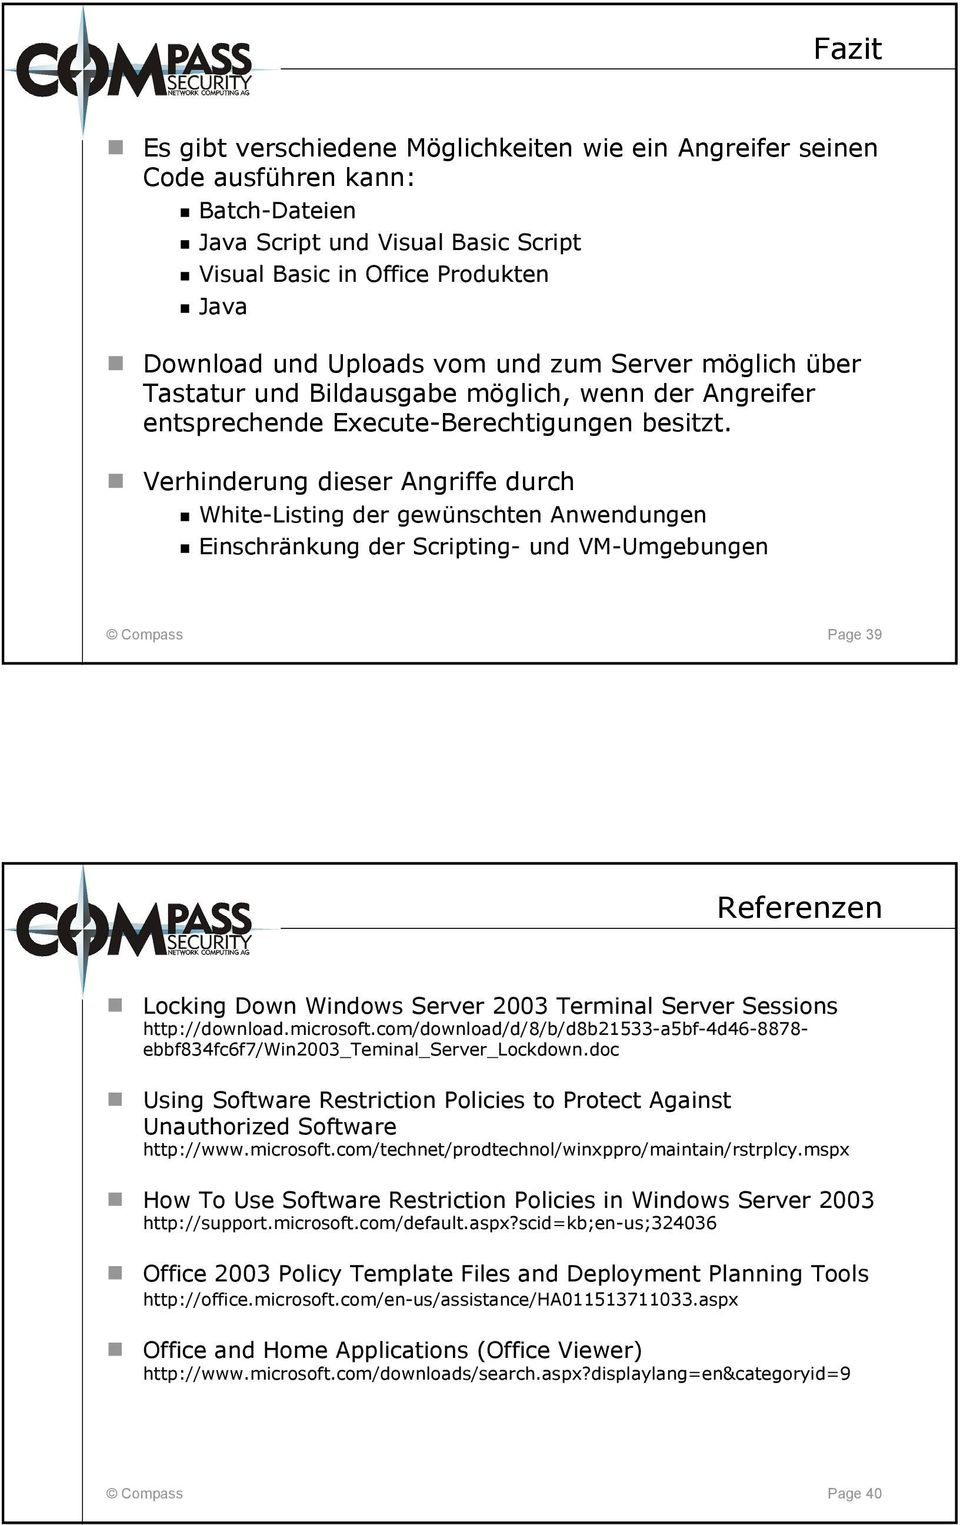 Verhinderun dieser Anriffe durch White-Listin der ewünschten Anwendunen Einschränkun der Scriptin- und VM-Umebunen Compass Pae 39 Referenzen Lockin Down Windows Server 2003 Terminal Server Sessions